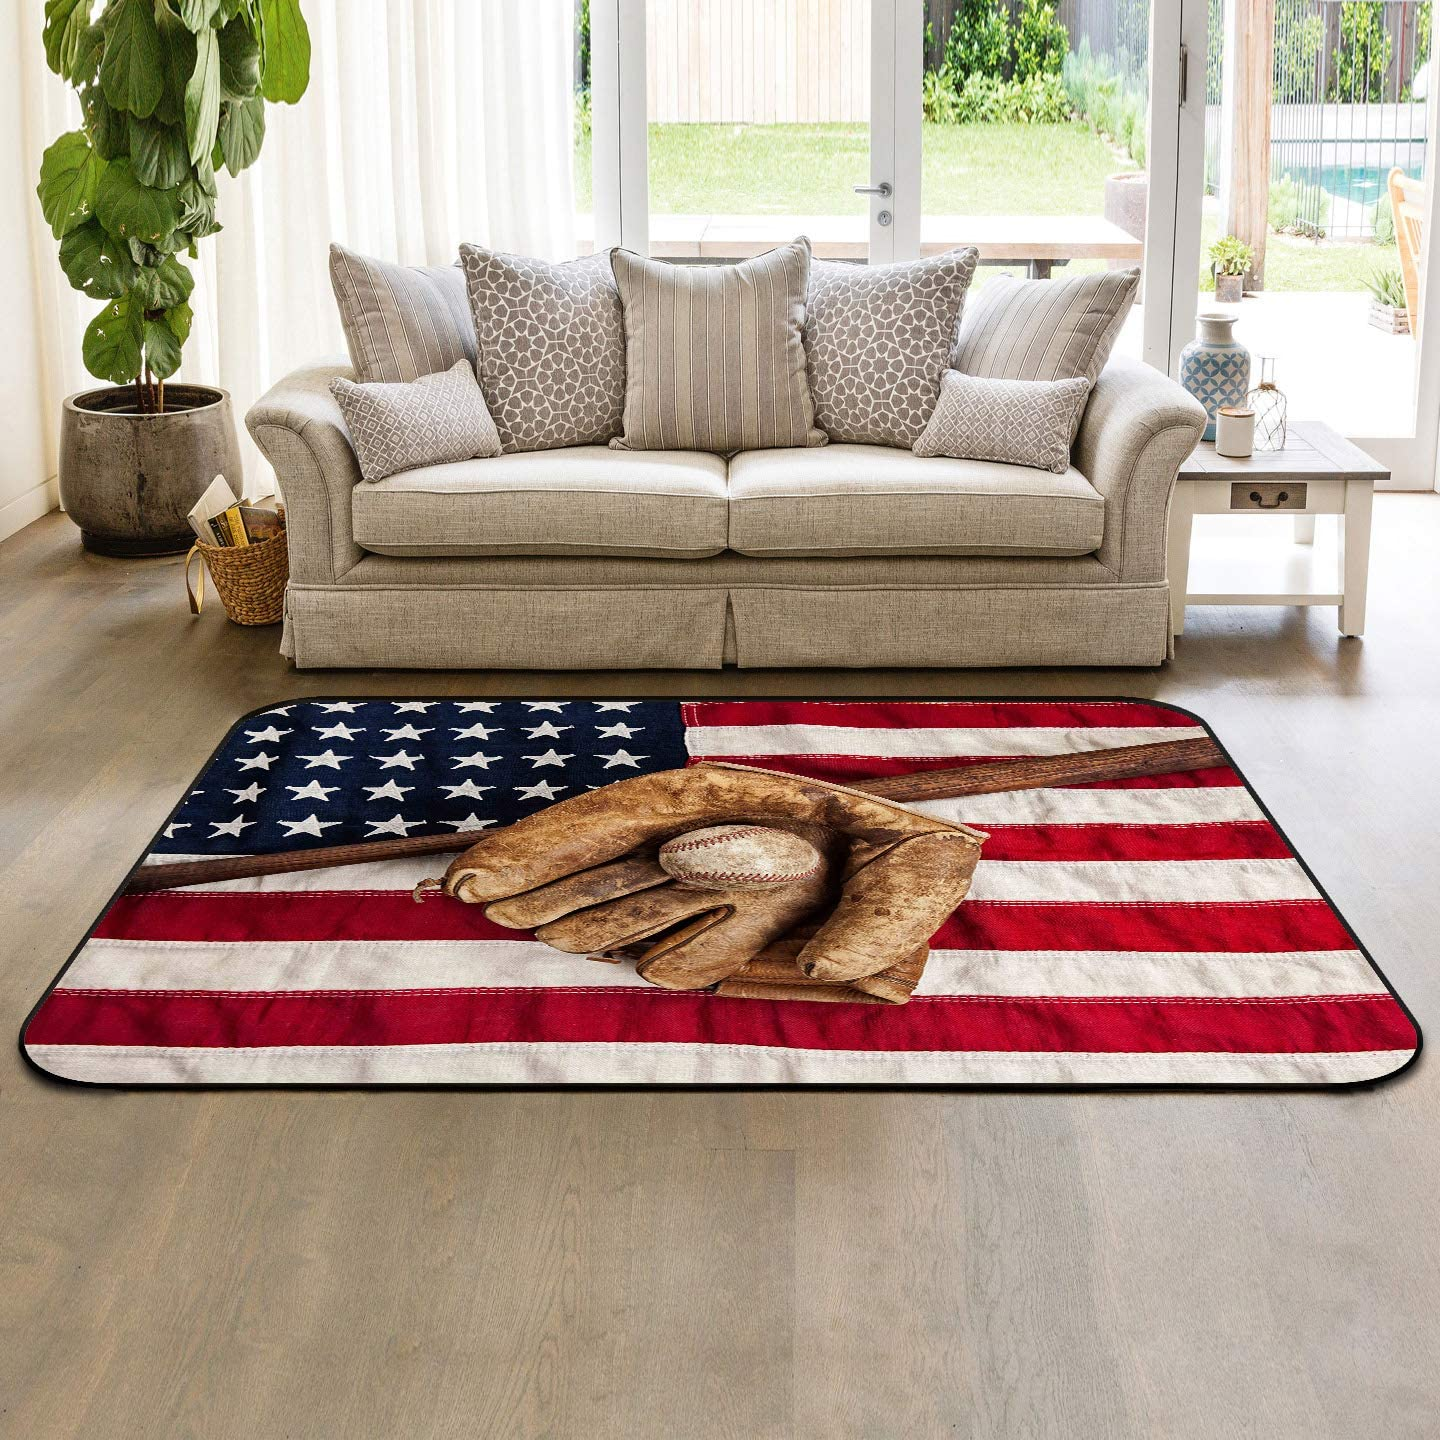 Large Area Rugs 5 x 8 Modern Throw Carpet Floor Cover Nursery Rugs for Children Kids, Vintage Baseball League with USA American Flag Sports Theme, Indoor Outdoor Rugs for Living Room Bedroom